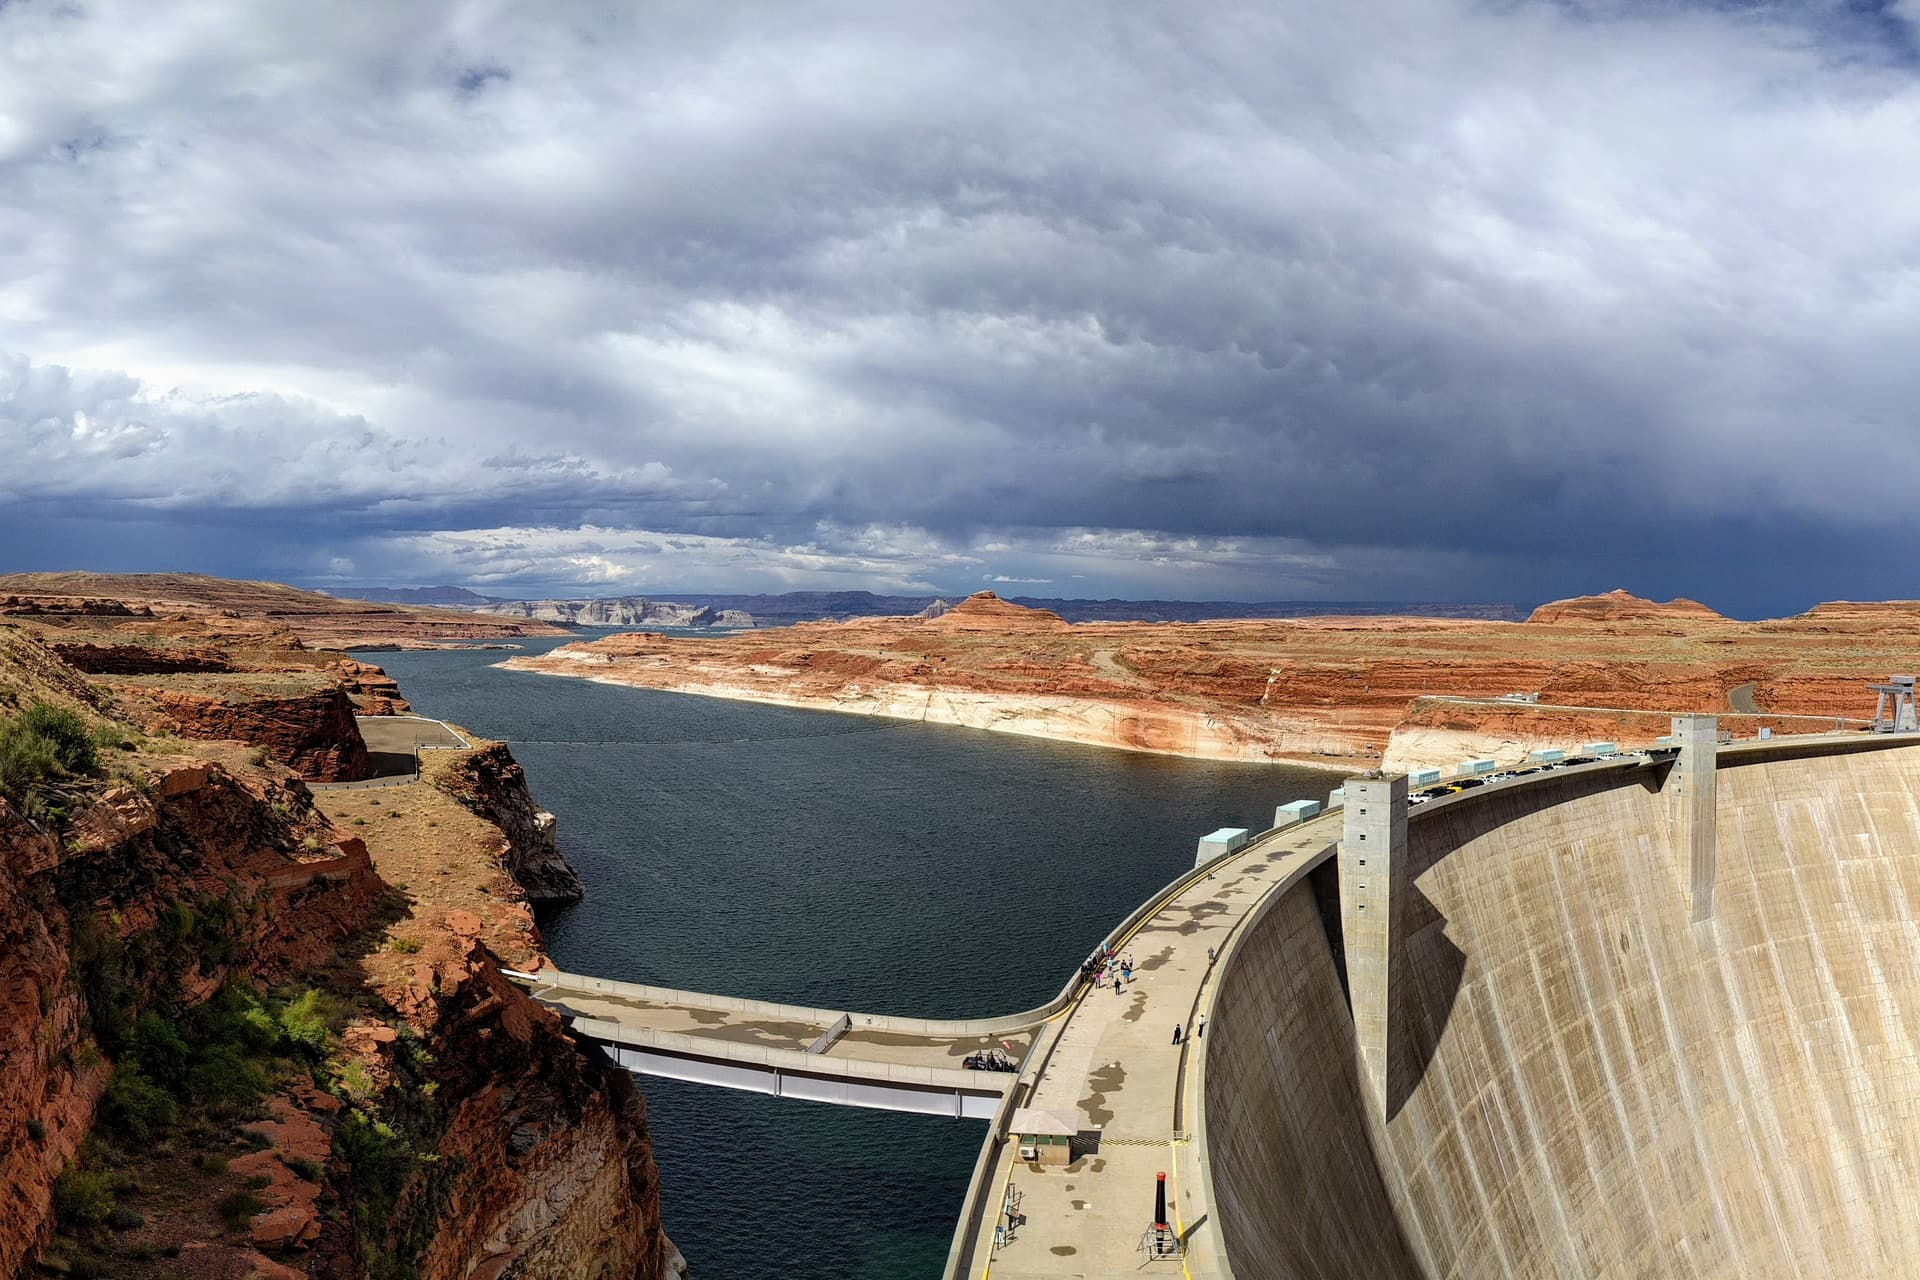 The Glen Canyon Dam, with Lake Powell extending behind it to the horizon. The rocks on either side of the lake are bright red-orange, but turn white just above the water. A thunder storm can be seen in the distance.